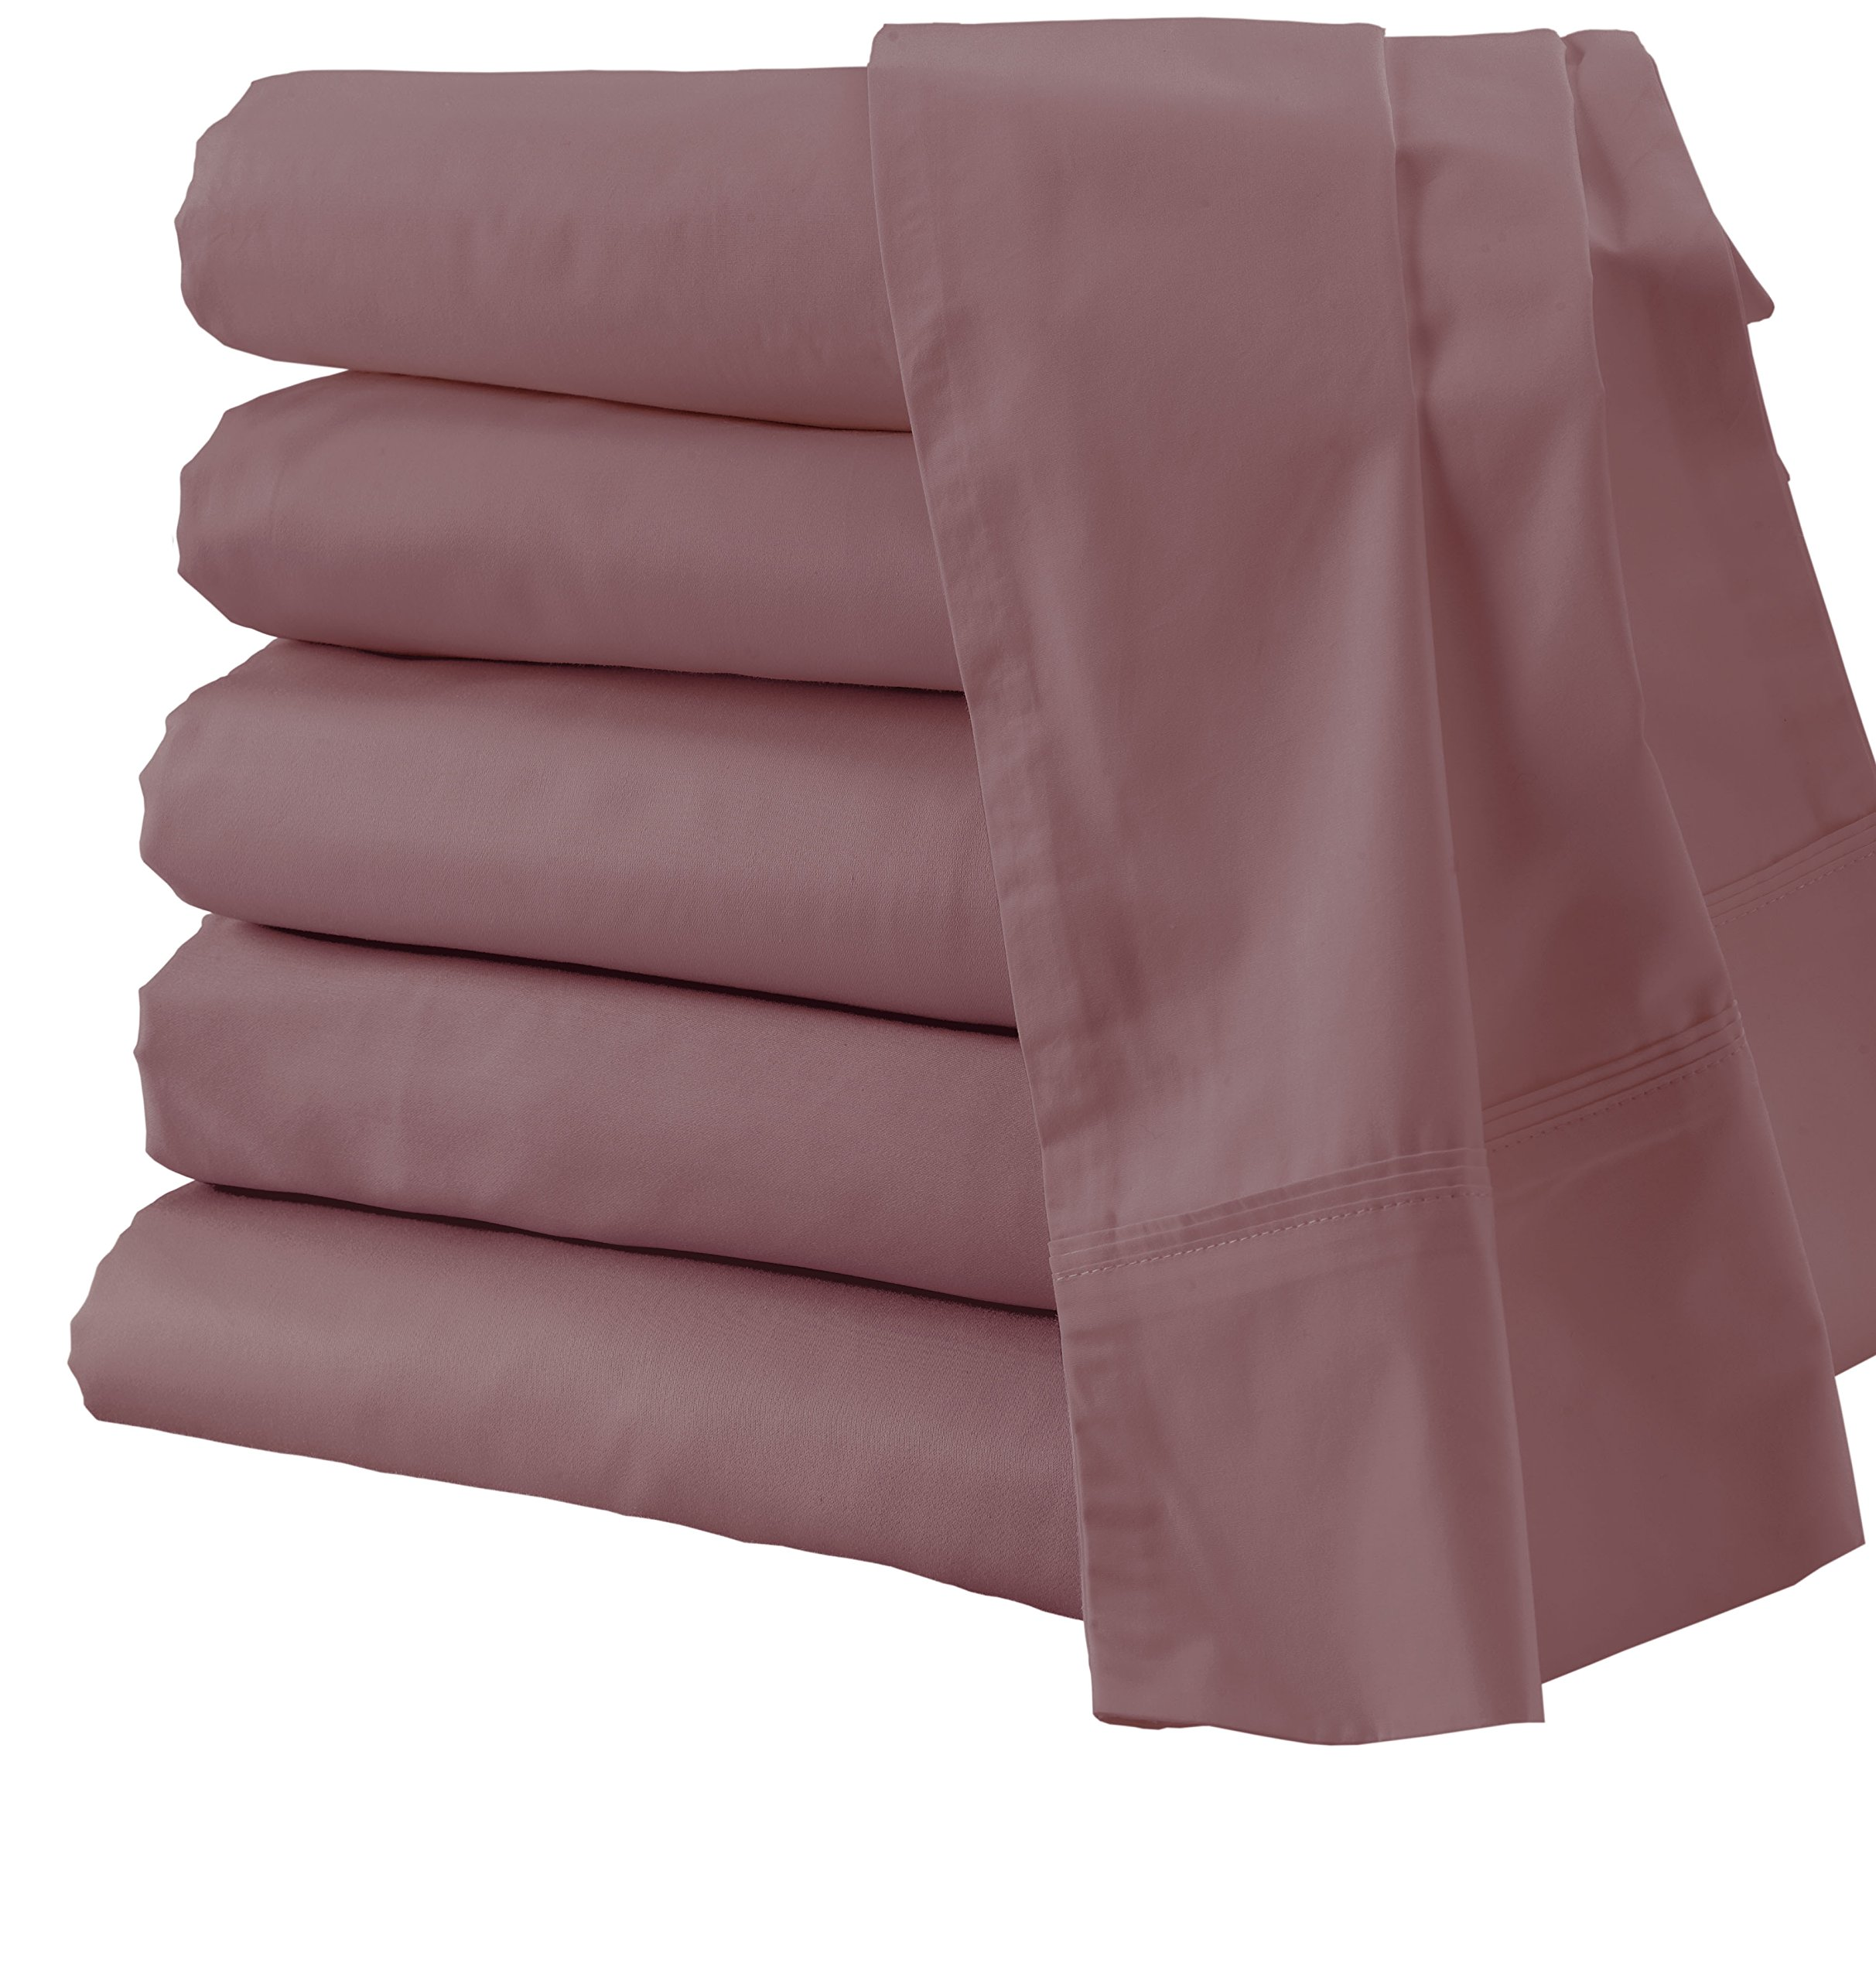 Outlast All Season Temperature Regulating Sheet Set in Rose, XL-Twin